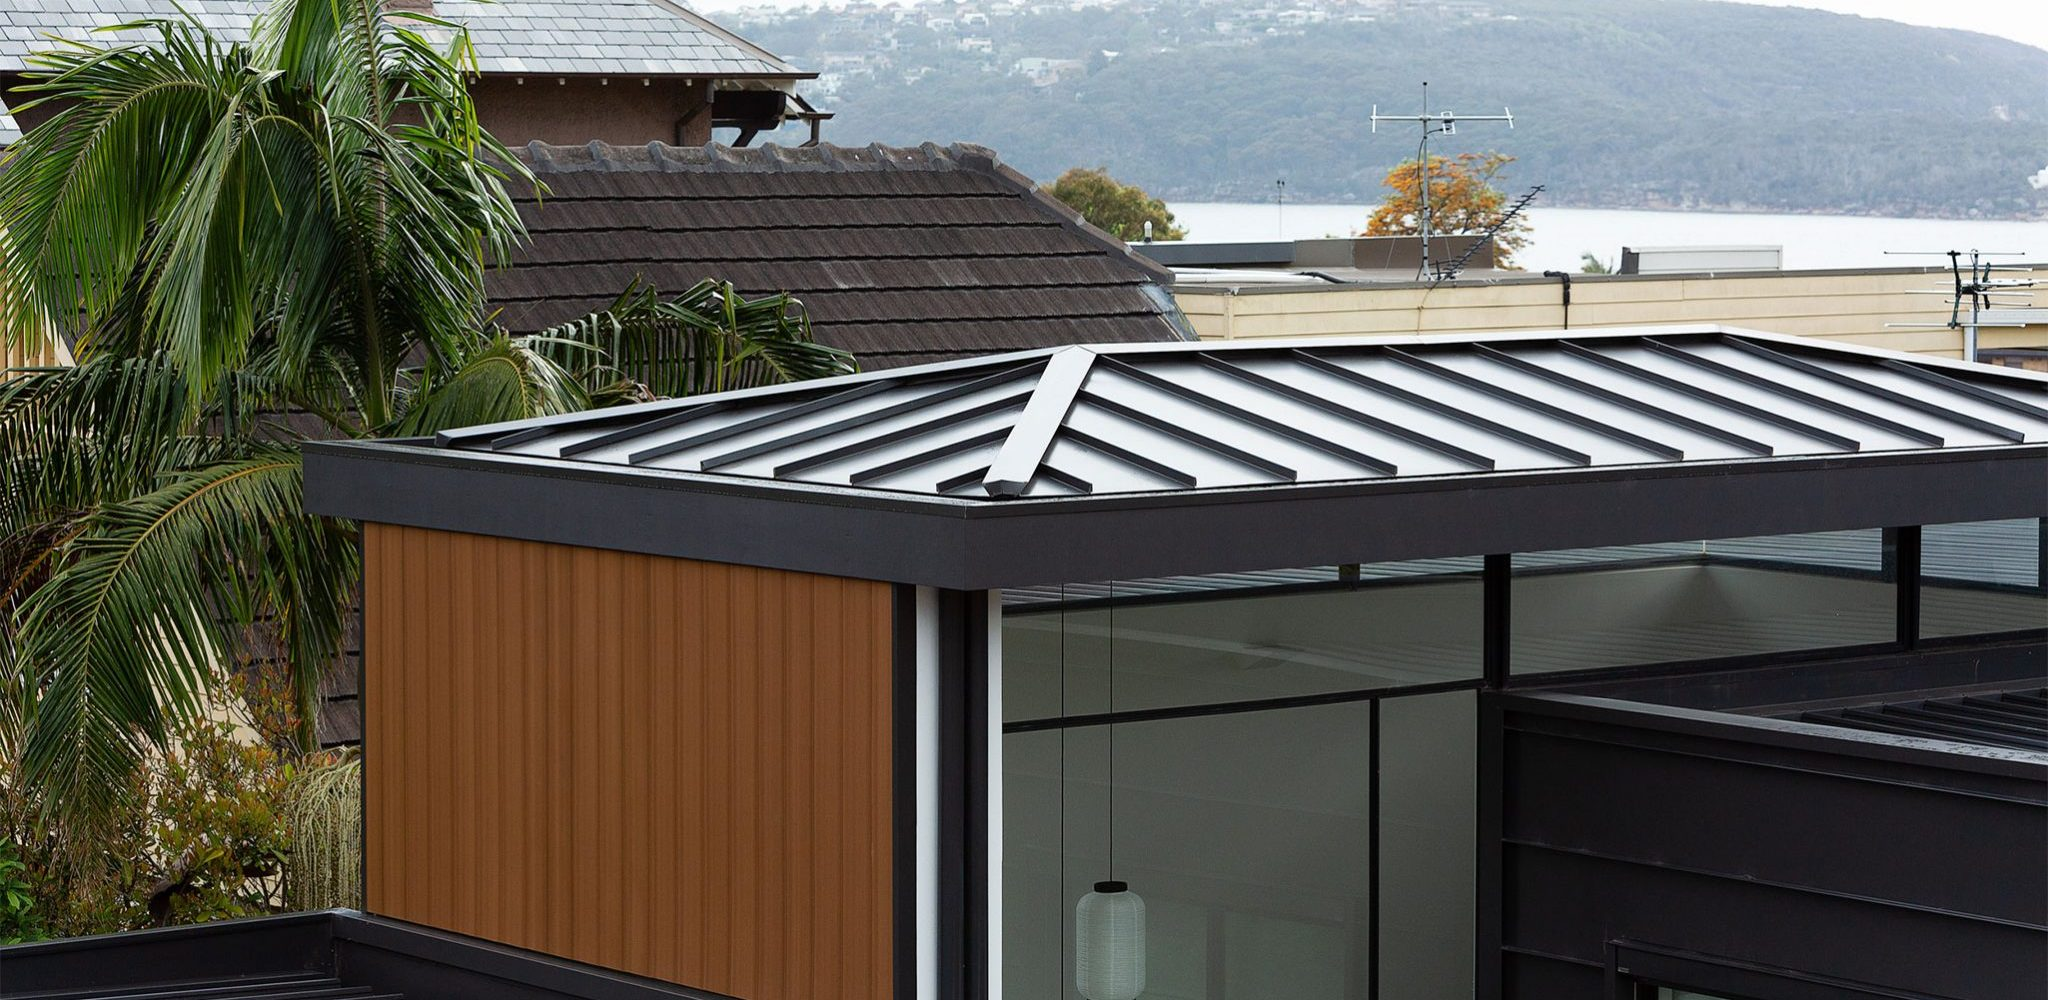 Hookys-Roofing_MetalRoof&Cladding04